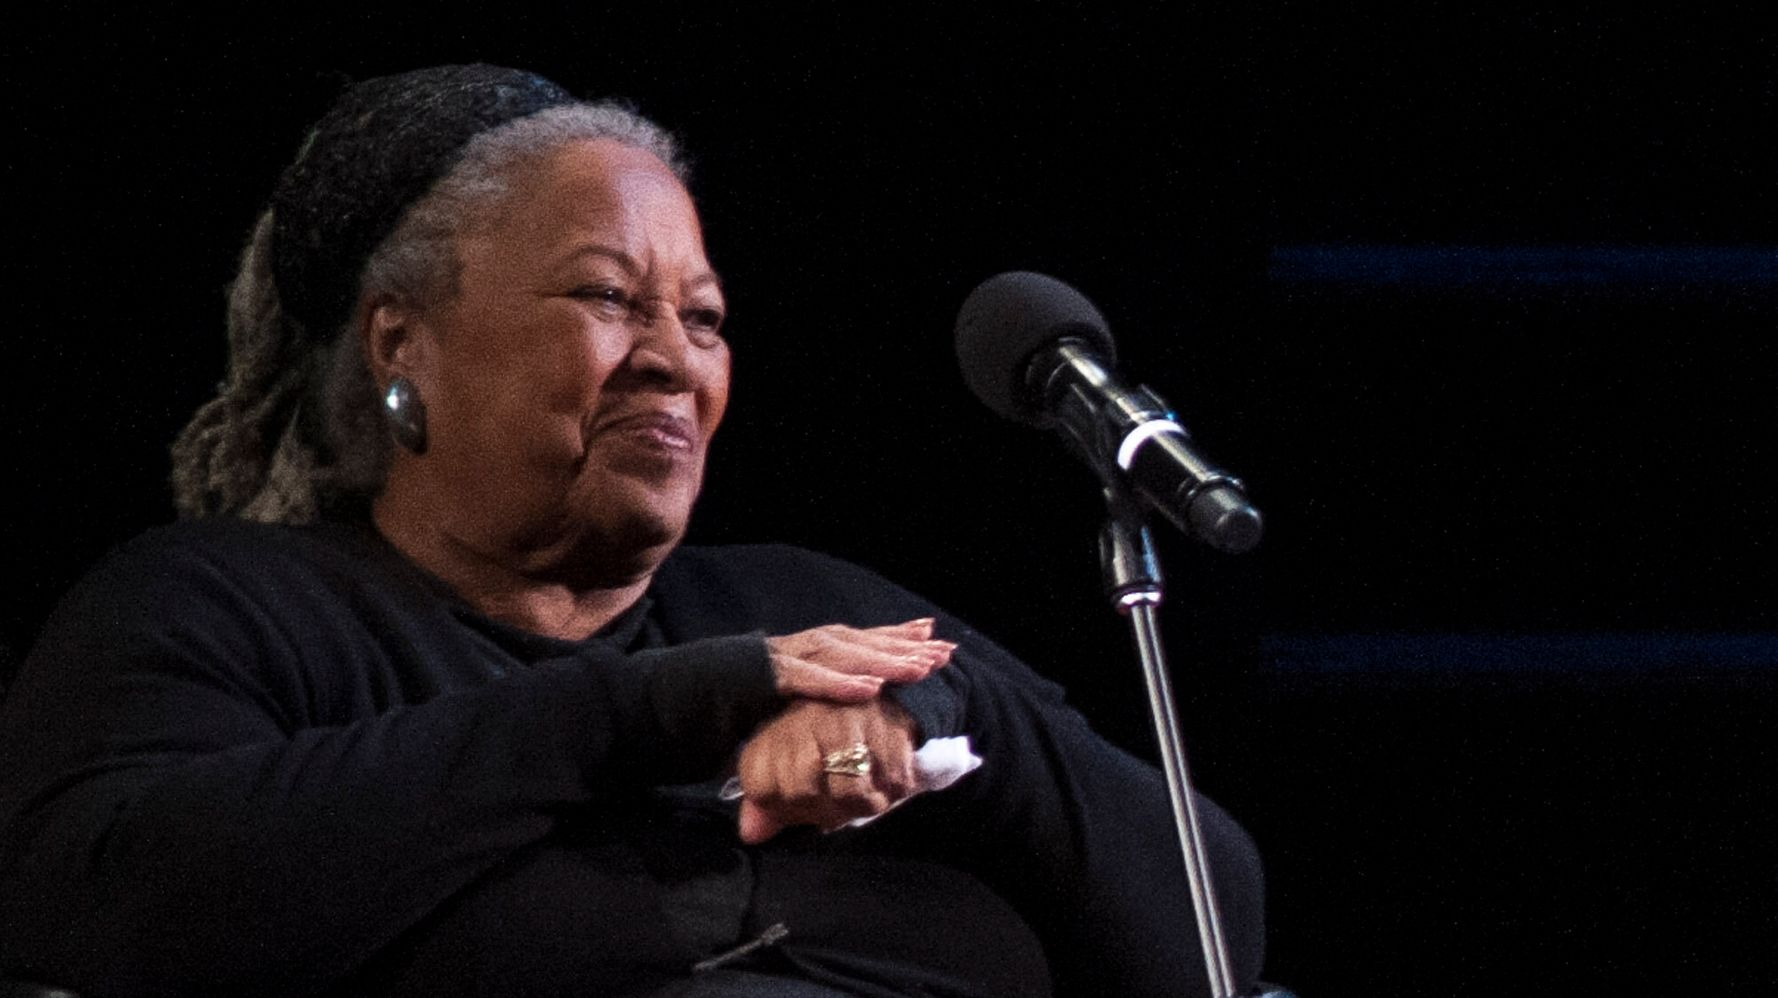 Westlake Legal Group 5d49ca2a3b00003900dae737 Video Of Toni Morrison Calling Out 'Powerfully Racist' Question Goes Viral